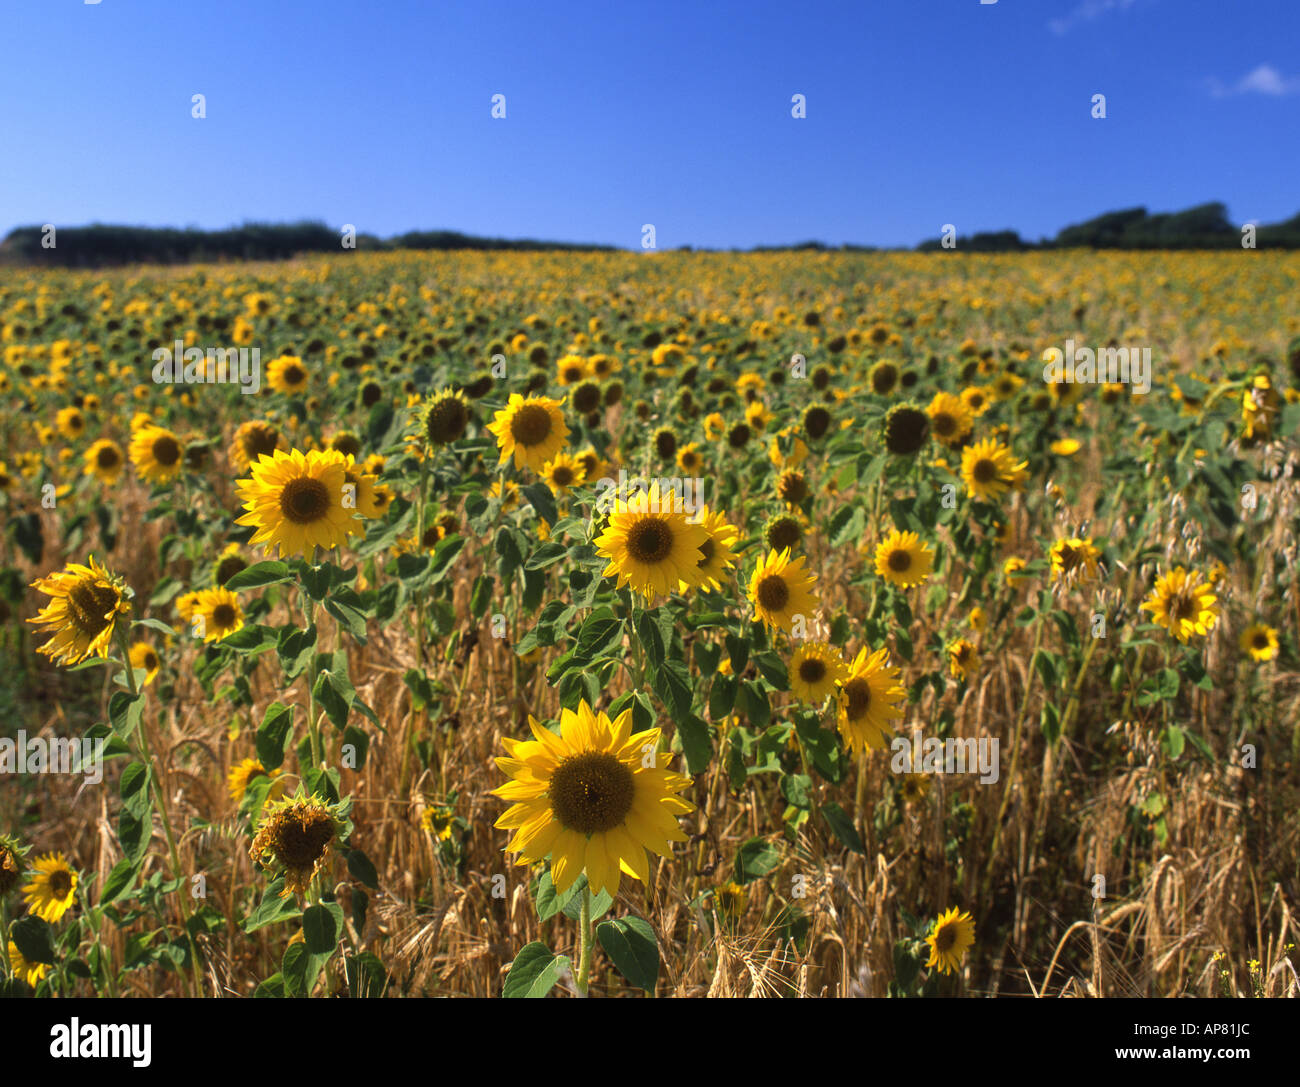 Field of sunflowers Gower Peninsula South Wales UK - Stock Image